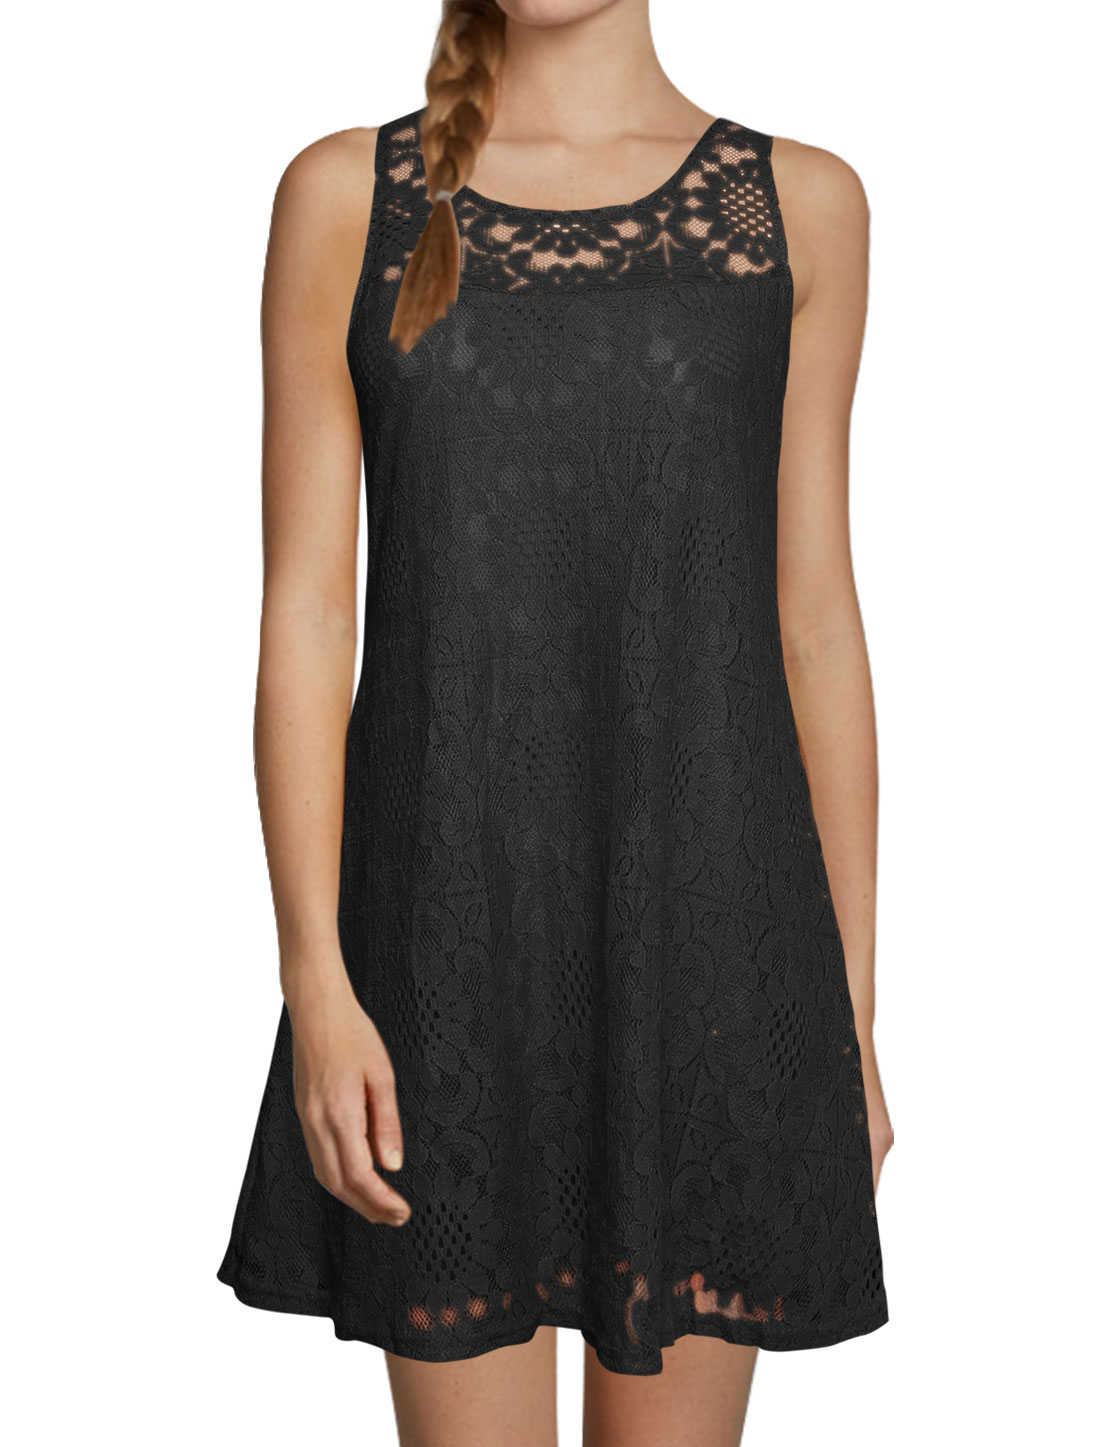 Women Round Neck Sleeveless Cut Out Back Lace Tunic Dress Black S